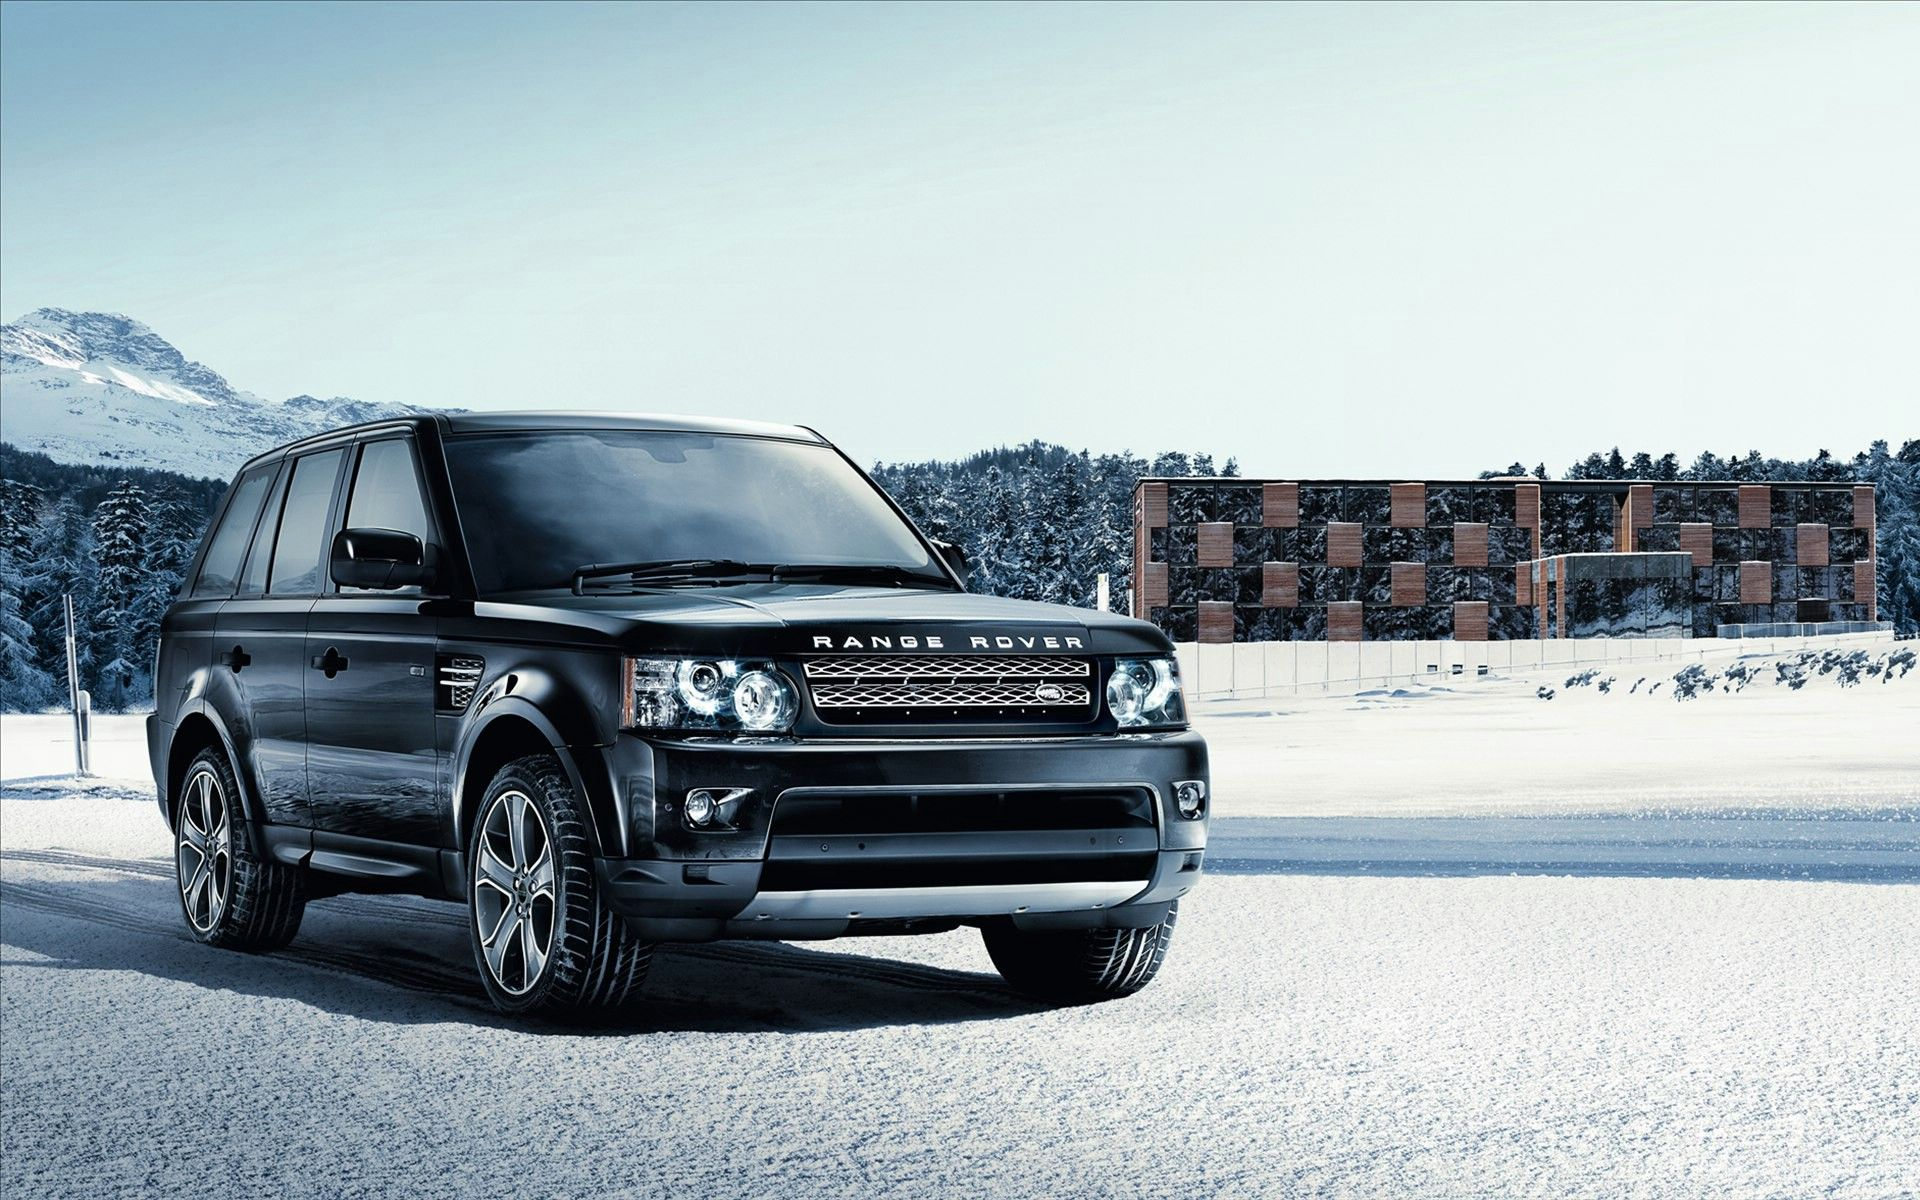 Land rover wallpapers find best latest land rover wallpapers in hd for your pc desktop background mobile phones